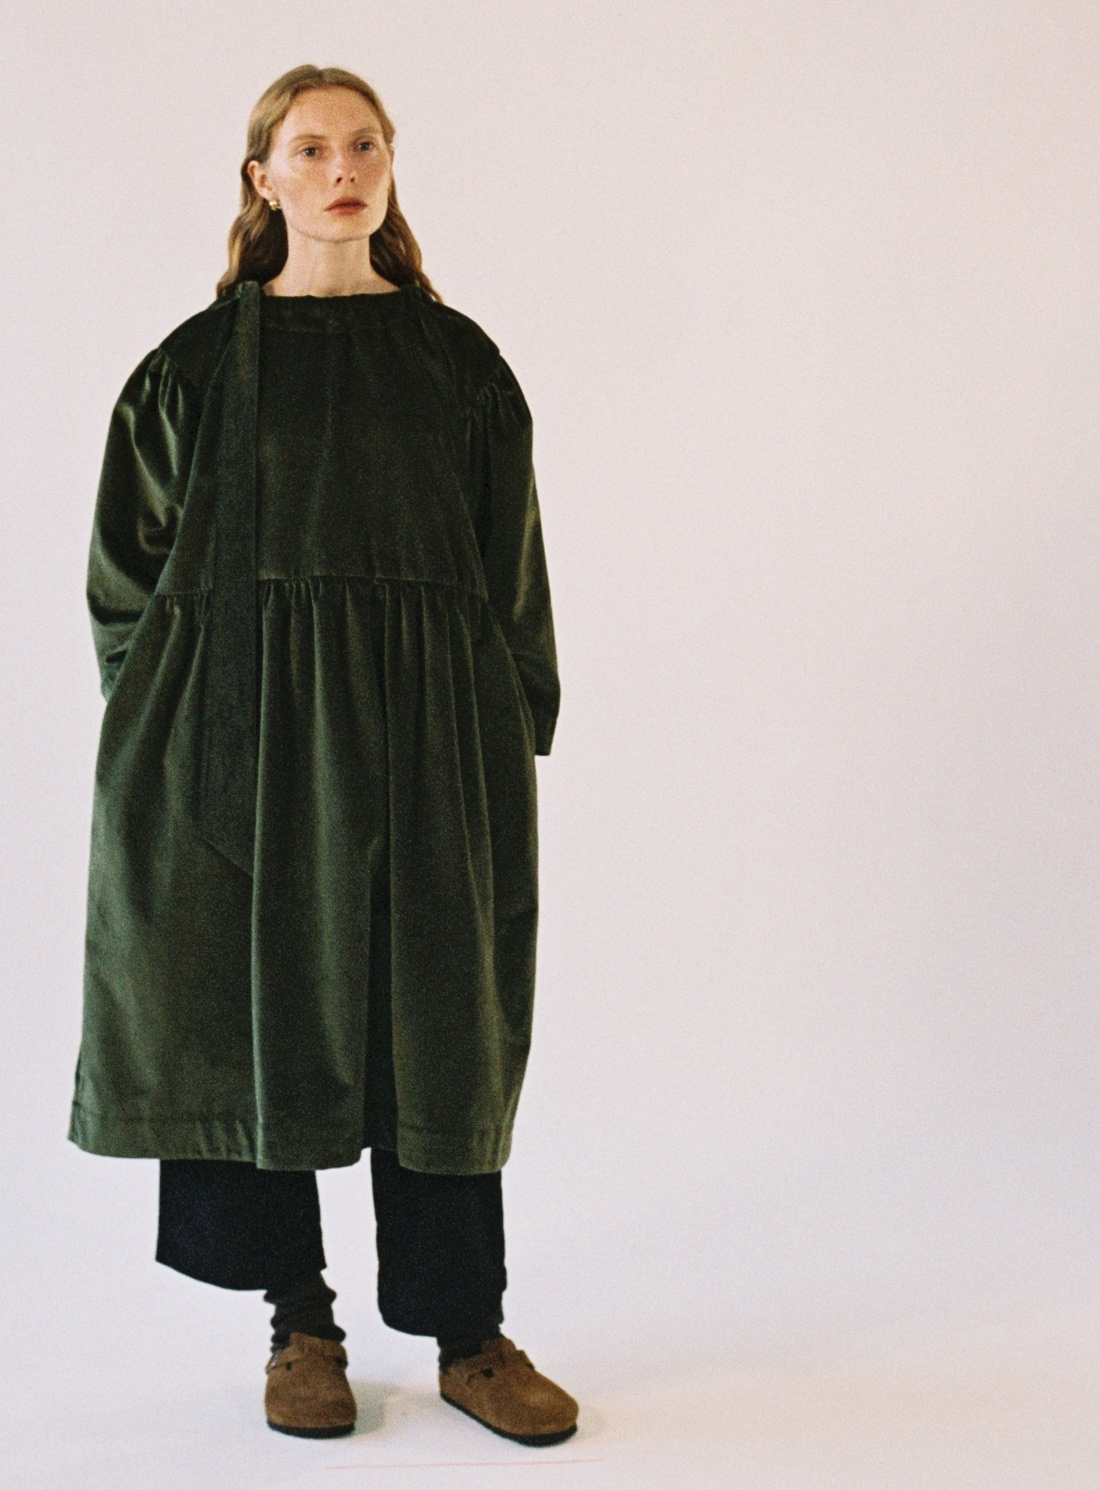 Mary Moss Green Velvet Dress By Cawley Dresses Young British Designers